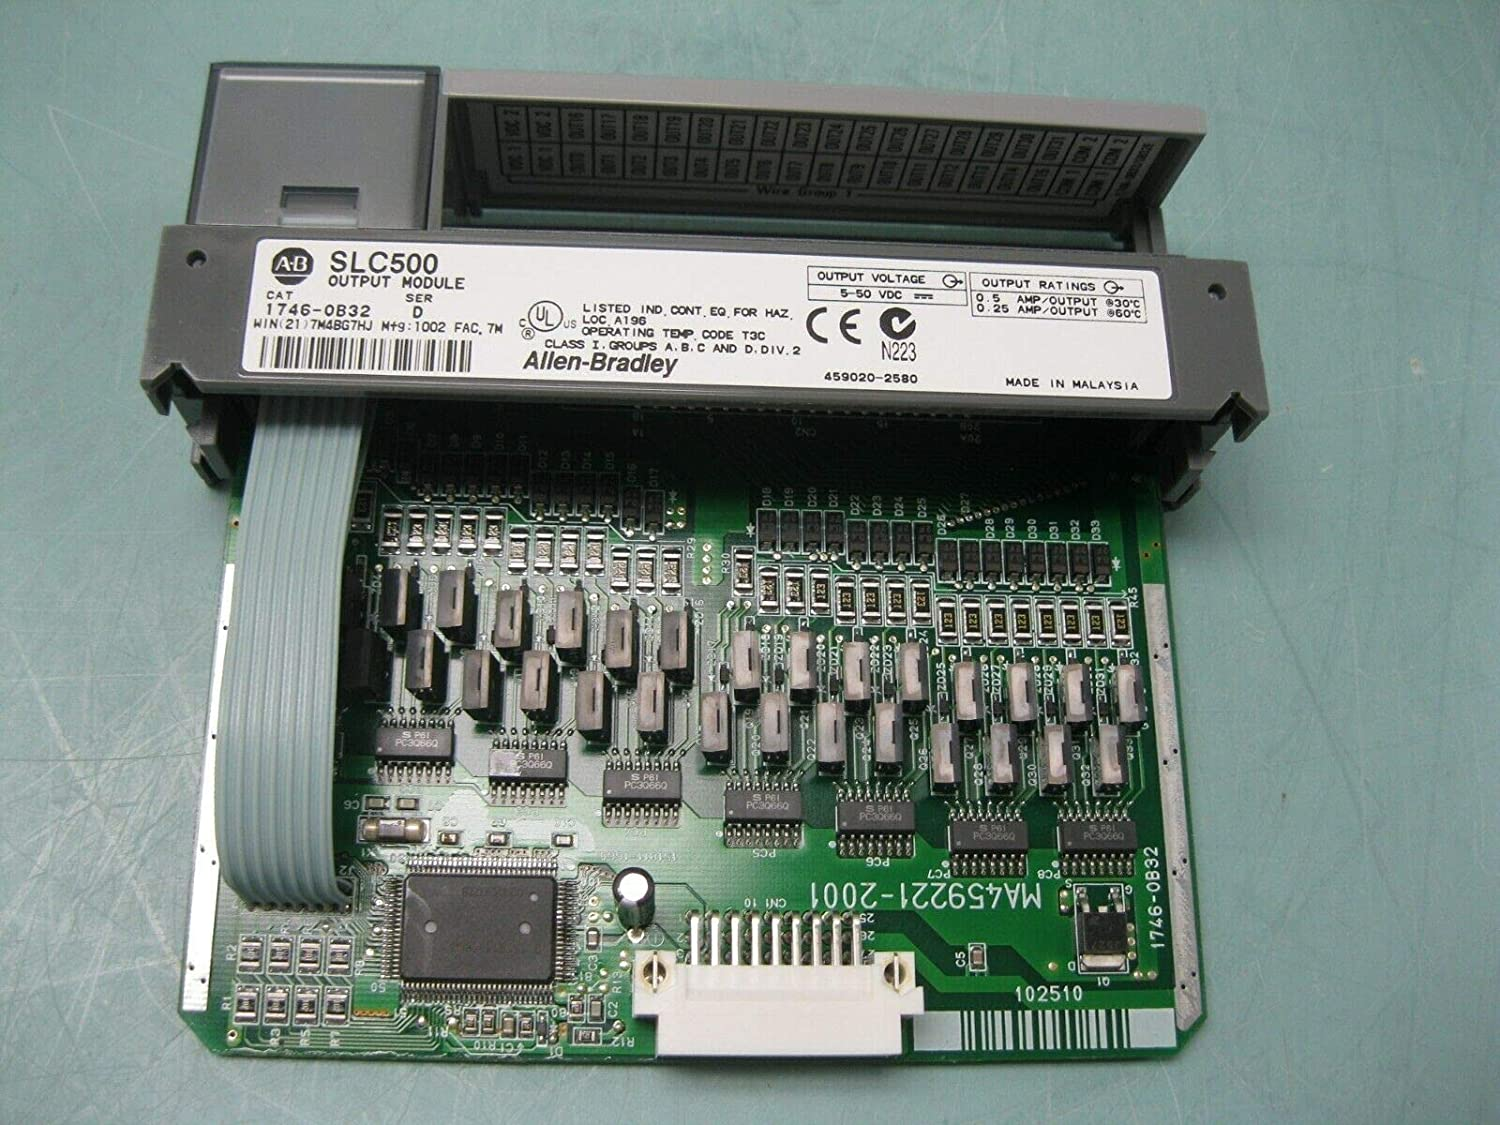 1746-OB32 Ser.D I/O Module, SLC 500, Digital, 8 Channel Output, Current SOURCING, 5-50 Volt DC, Open Style Chassis